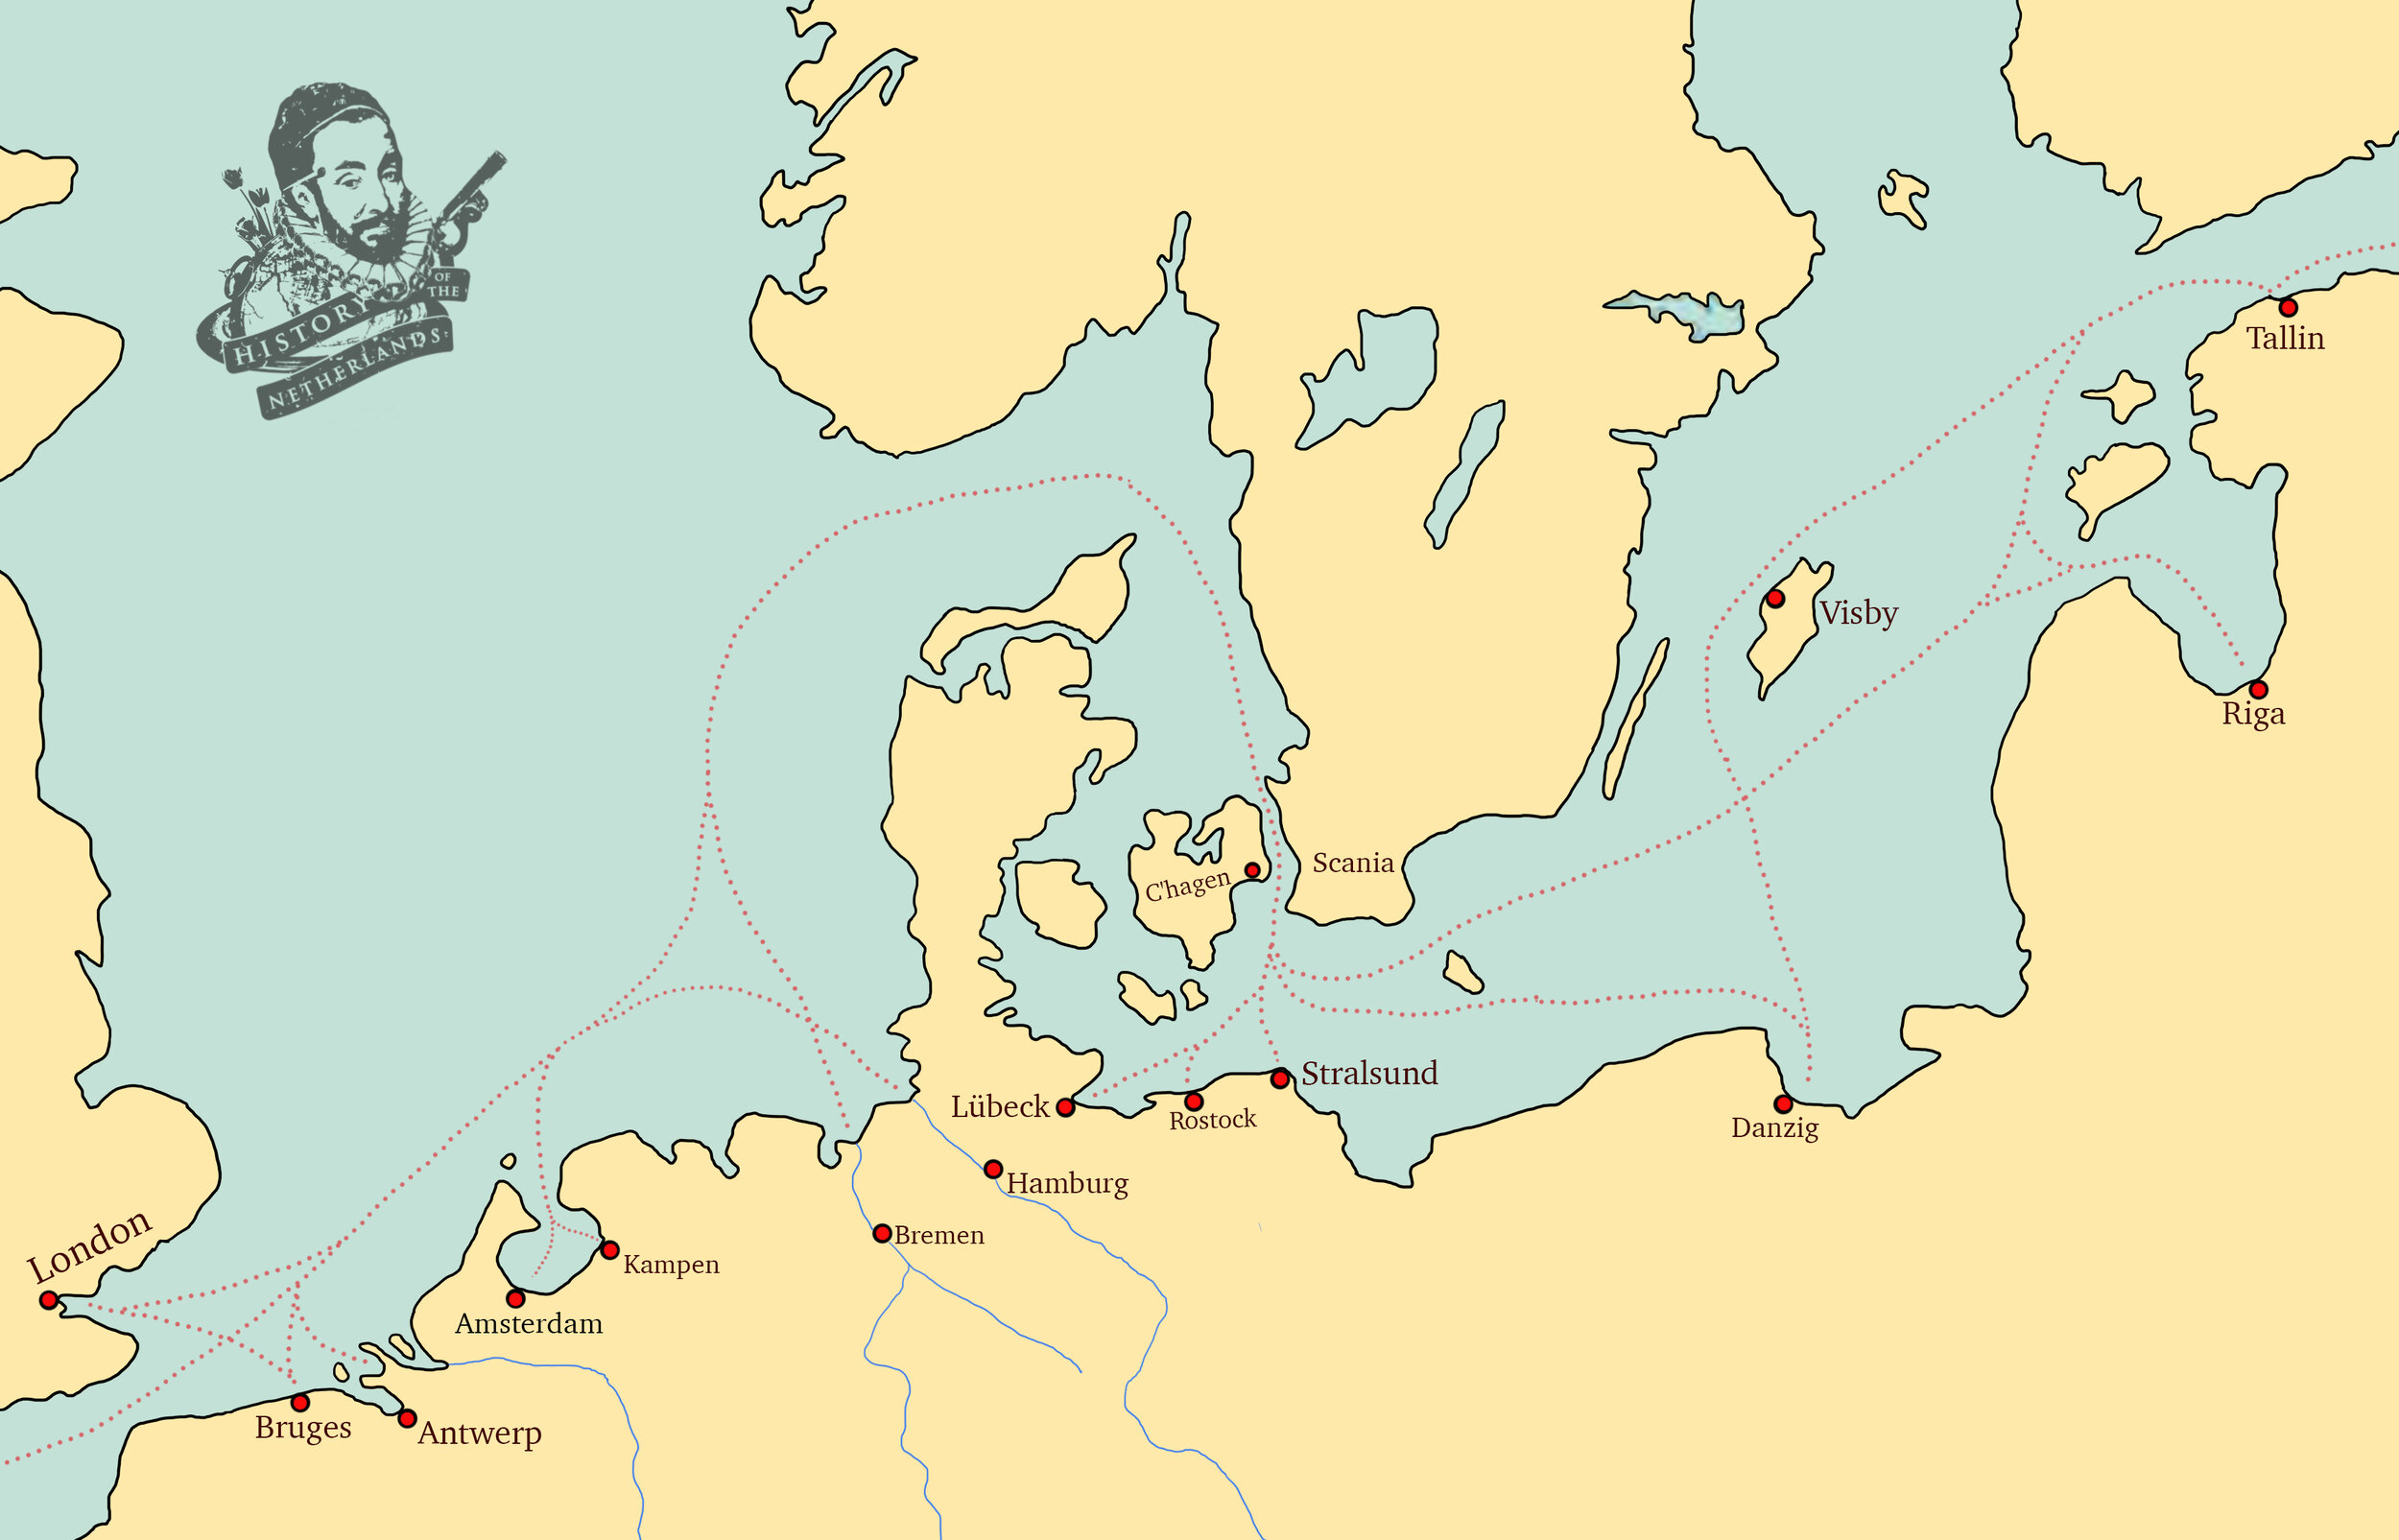 The herring trade in northern Europe 14th century. Map by David Cenzer